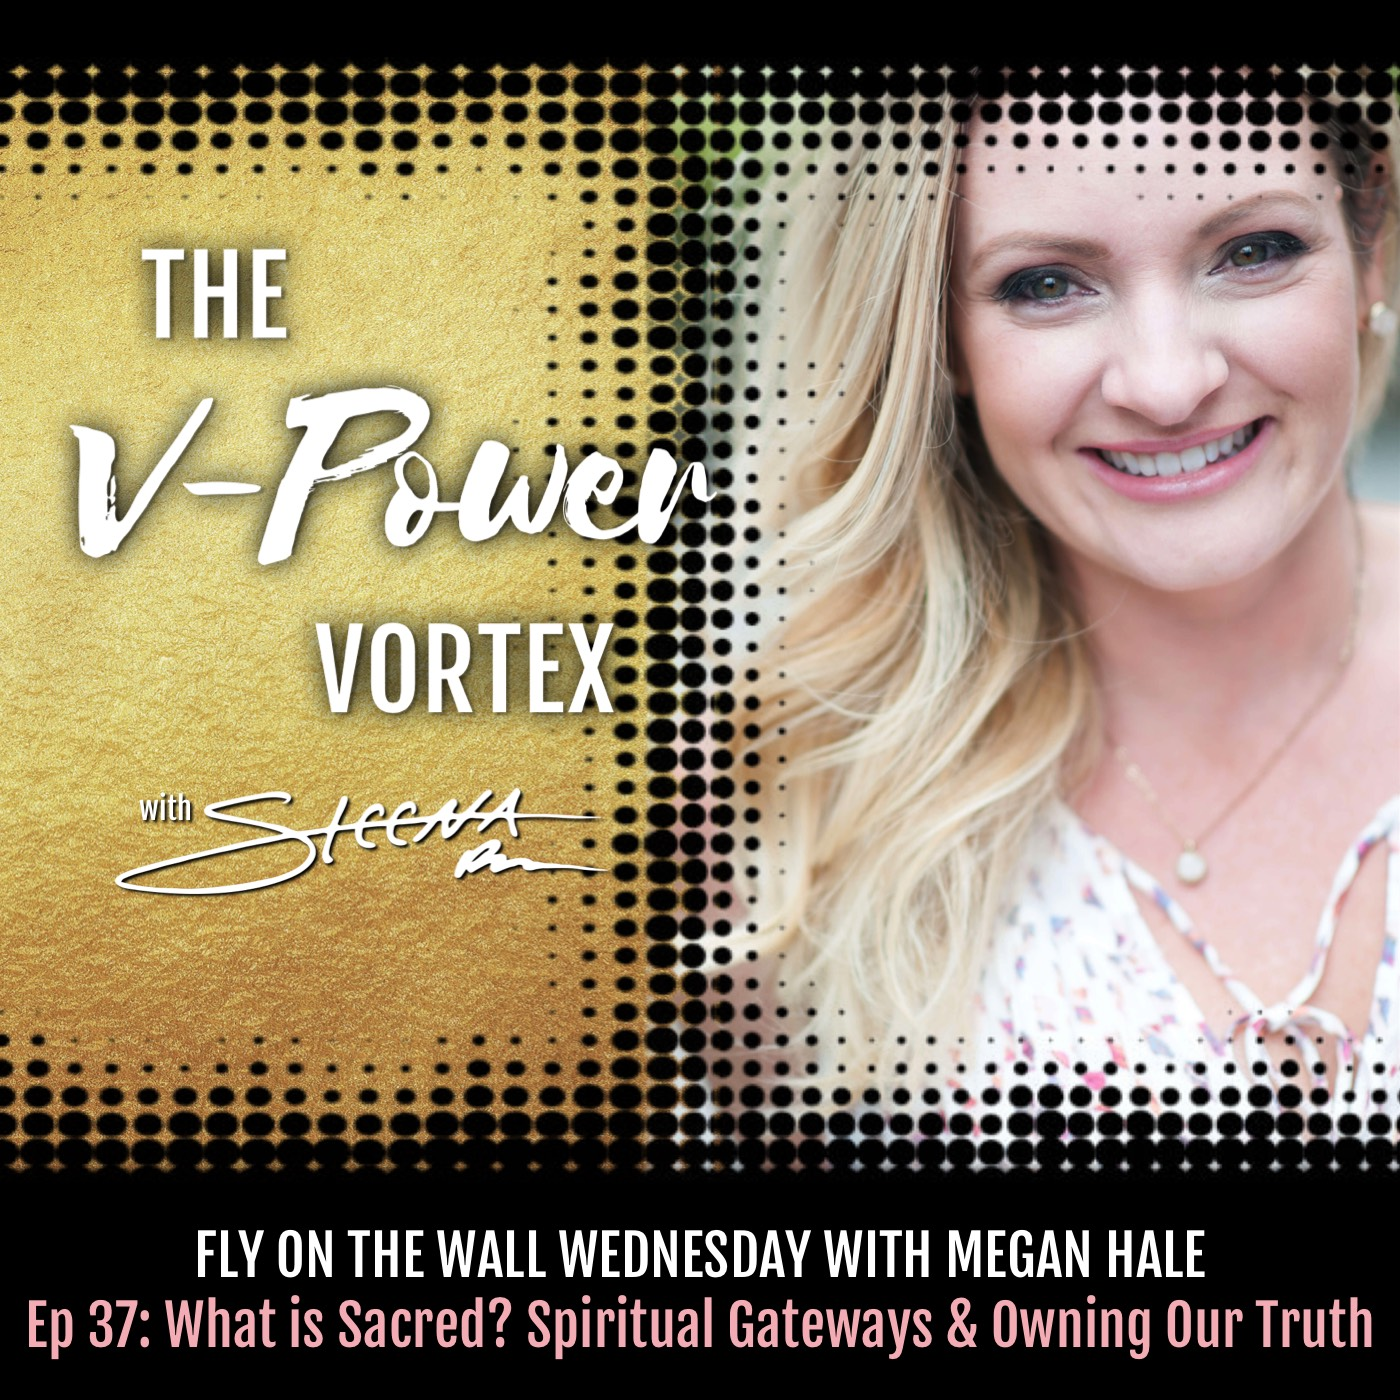 Ep 37 What is Sacred? Spiritual Gateways & Owning Our Truth  - Fly on the Wall Wednesday with Megan Hale.jpeg